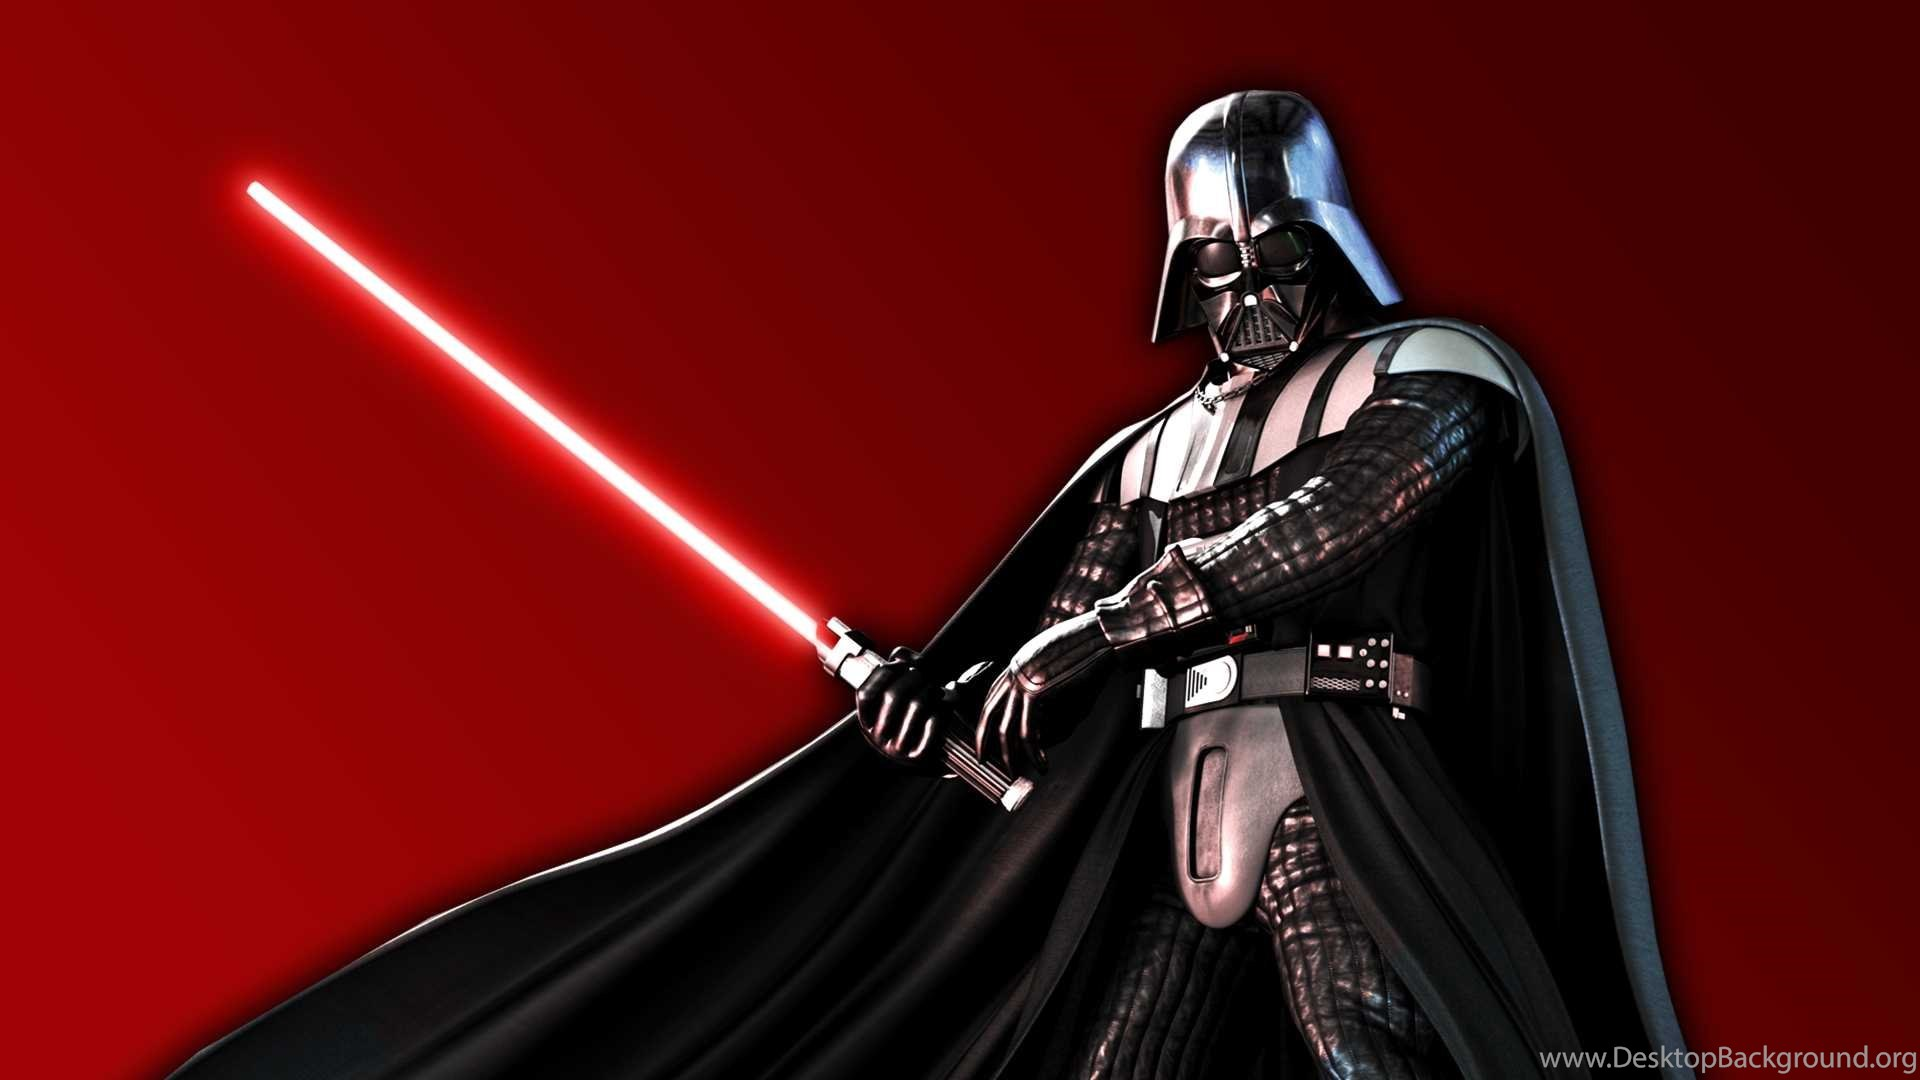 Darth Vader Wallpaper Iphone: Darth Vader Wallpapers HD Best Collection Of Anakin